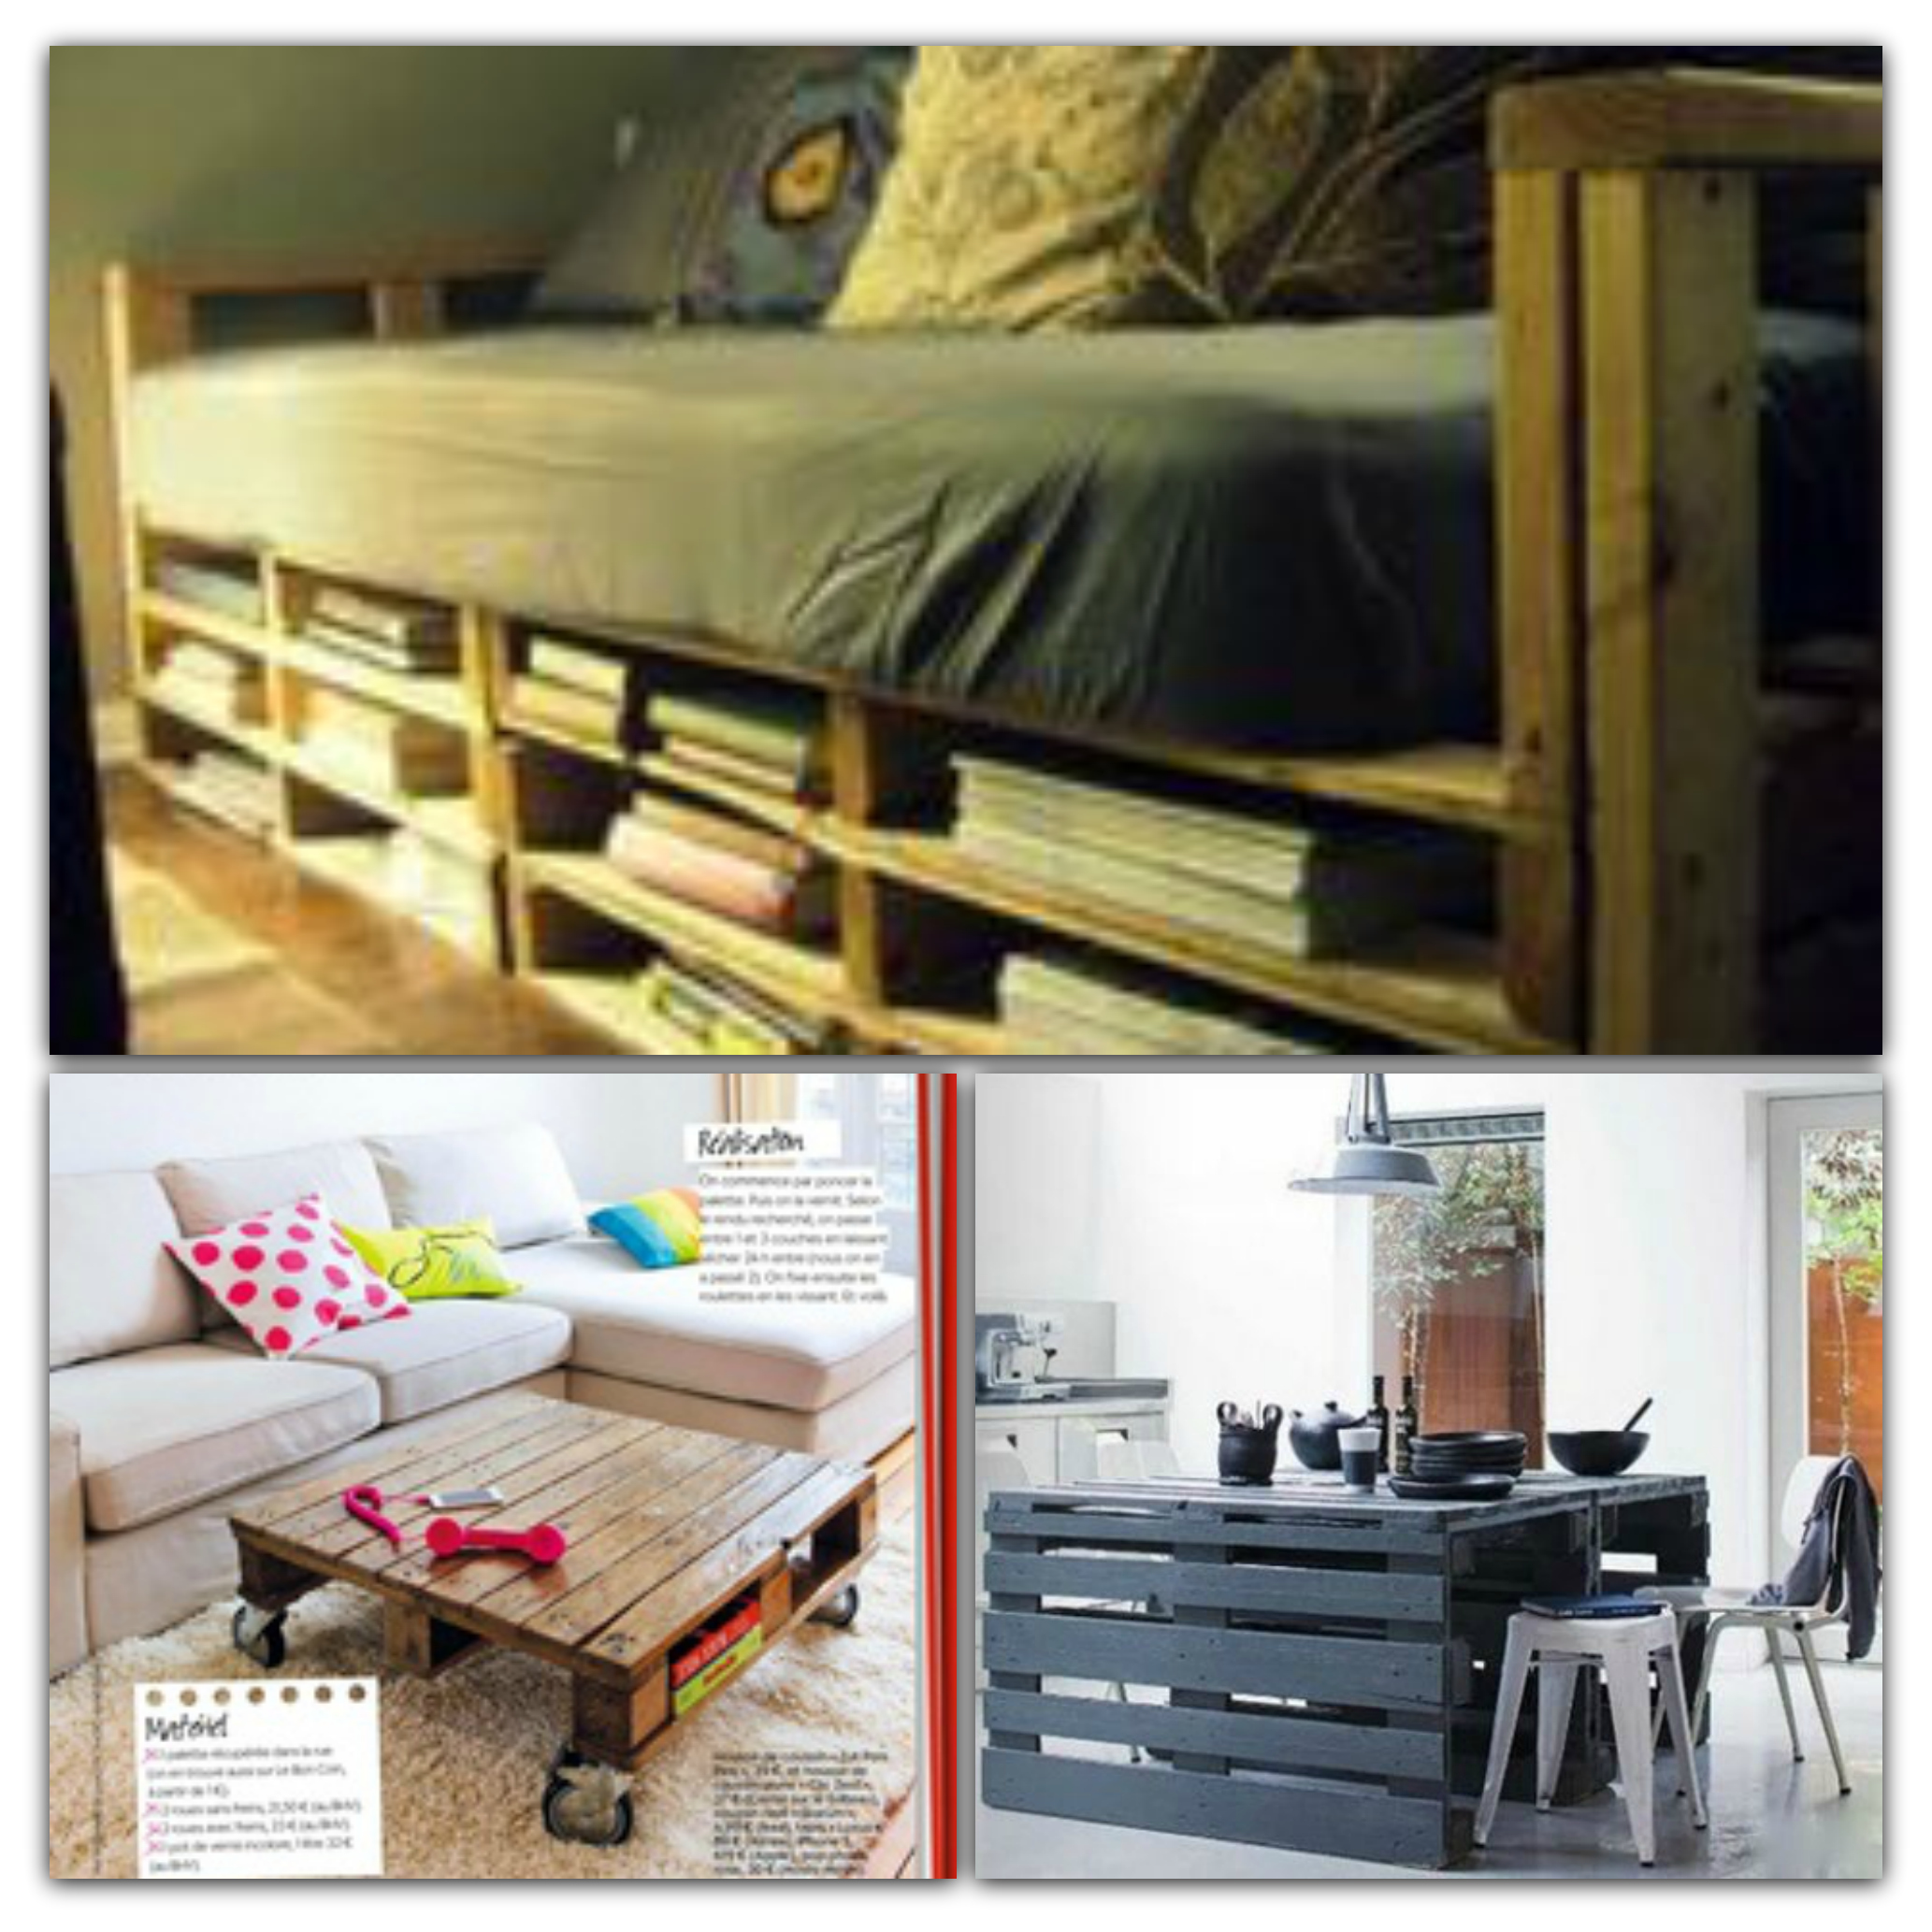 quoi faire avec une palette ea81 jornalagora. Black Bedroom Furniture Sets. Home Design Ideas